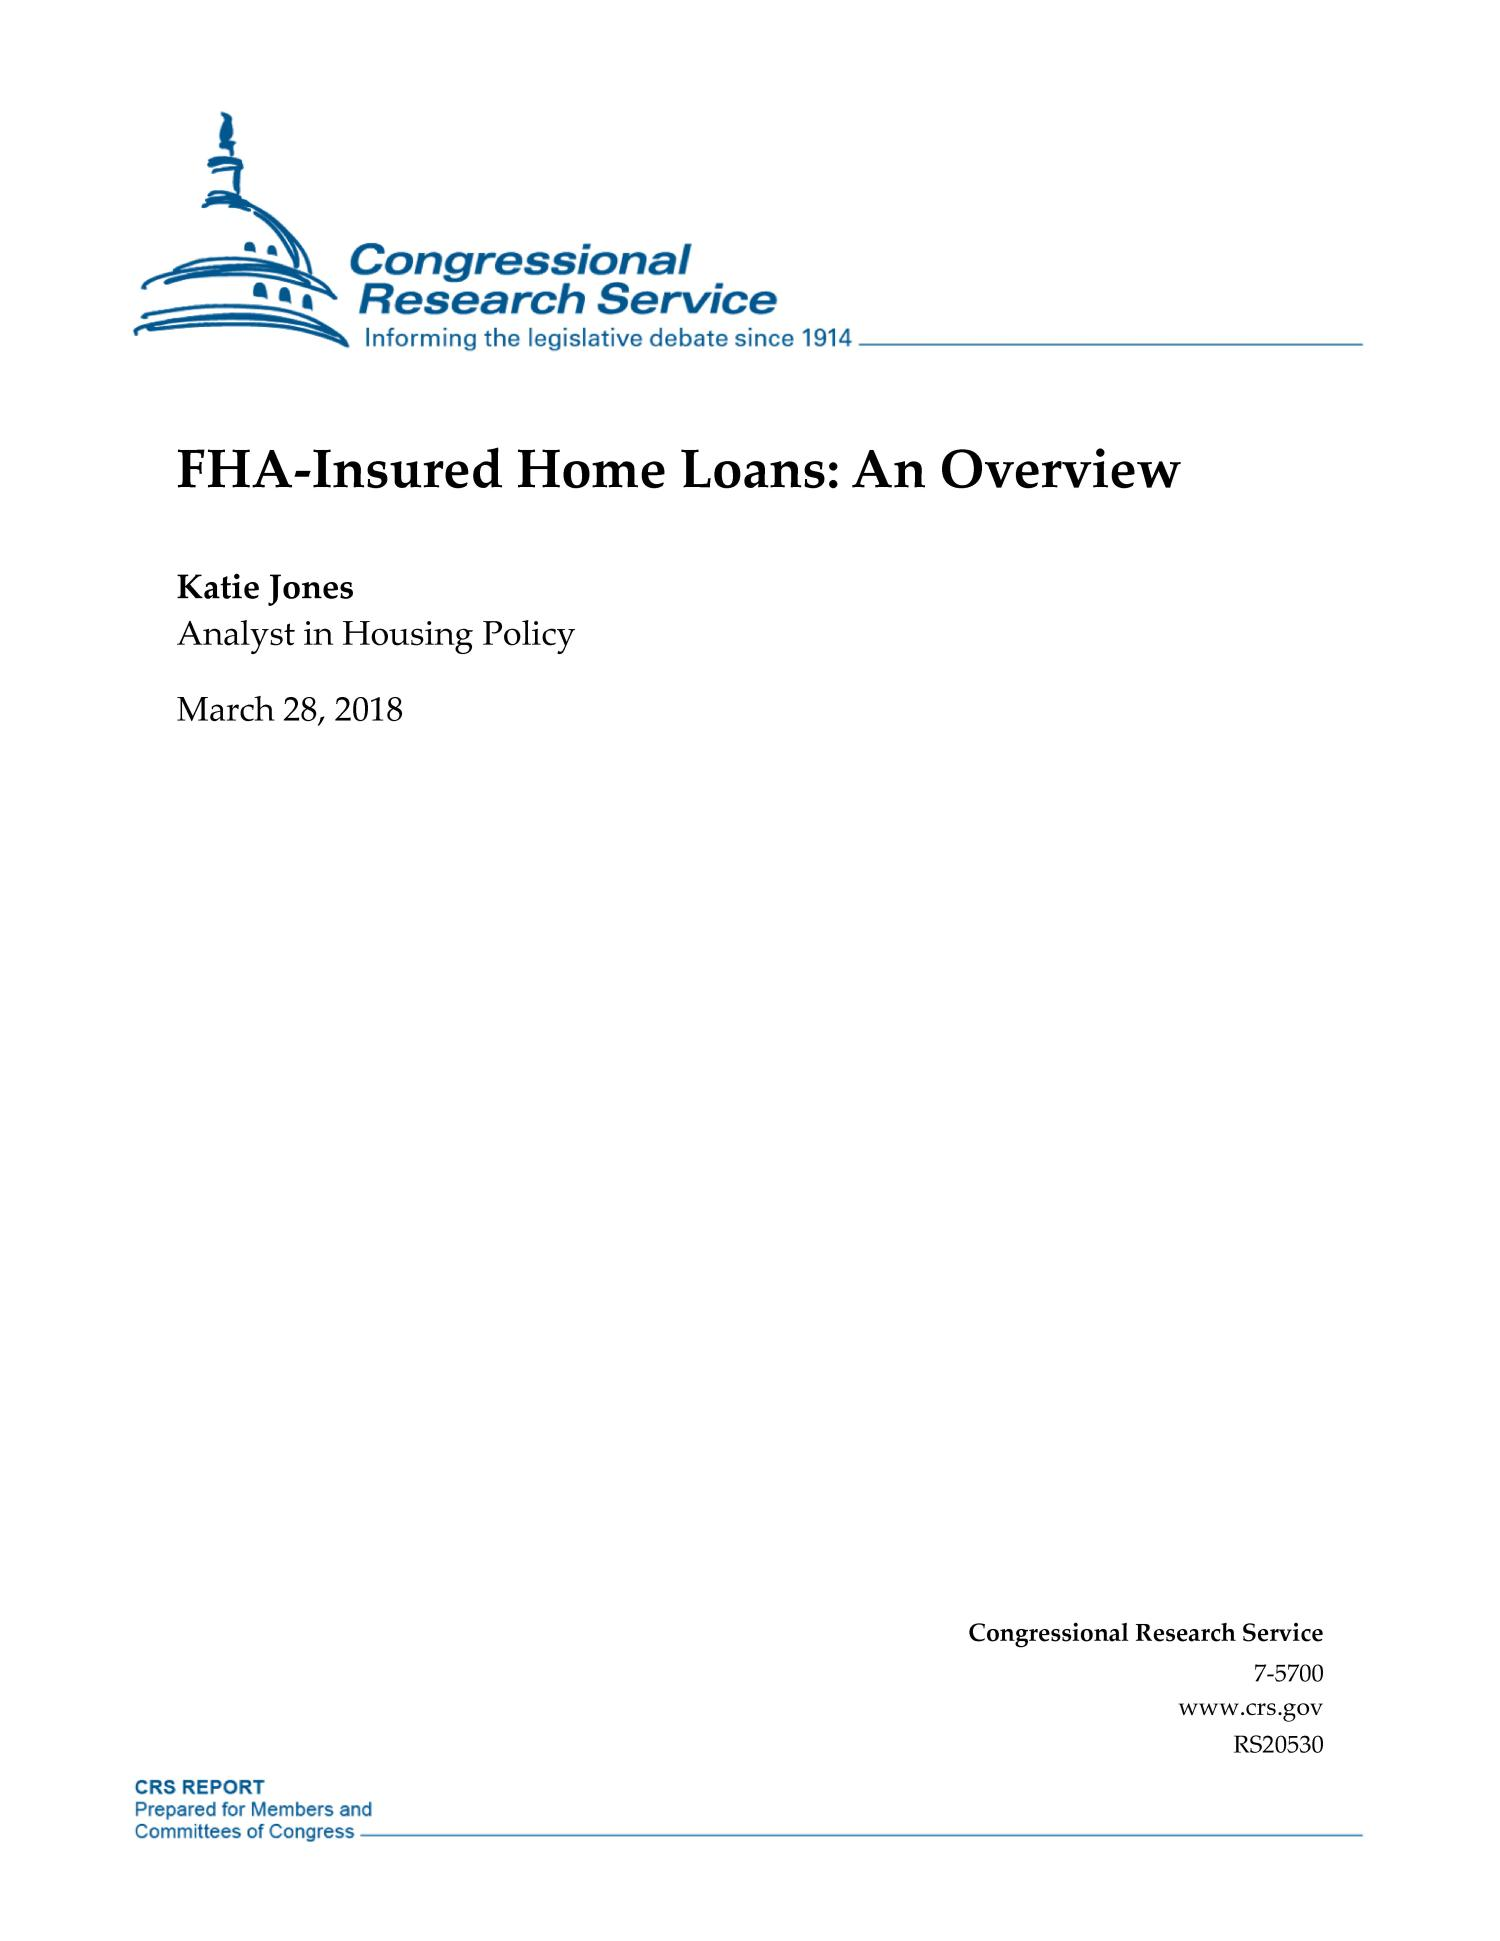 FHA-Insured Home Loans: An Overview                                                                                                      [Sequence #]: 1 of 22